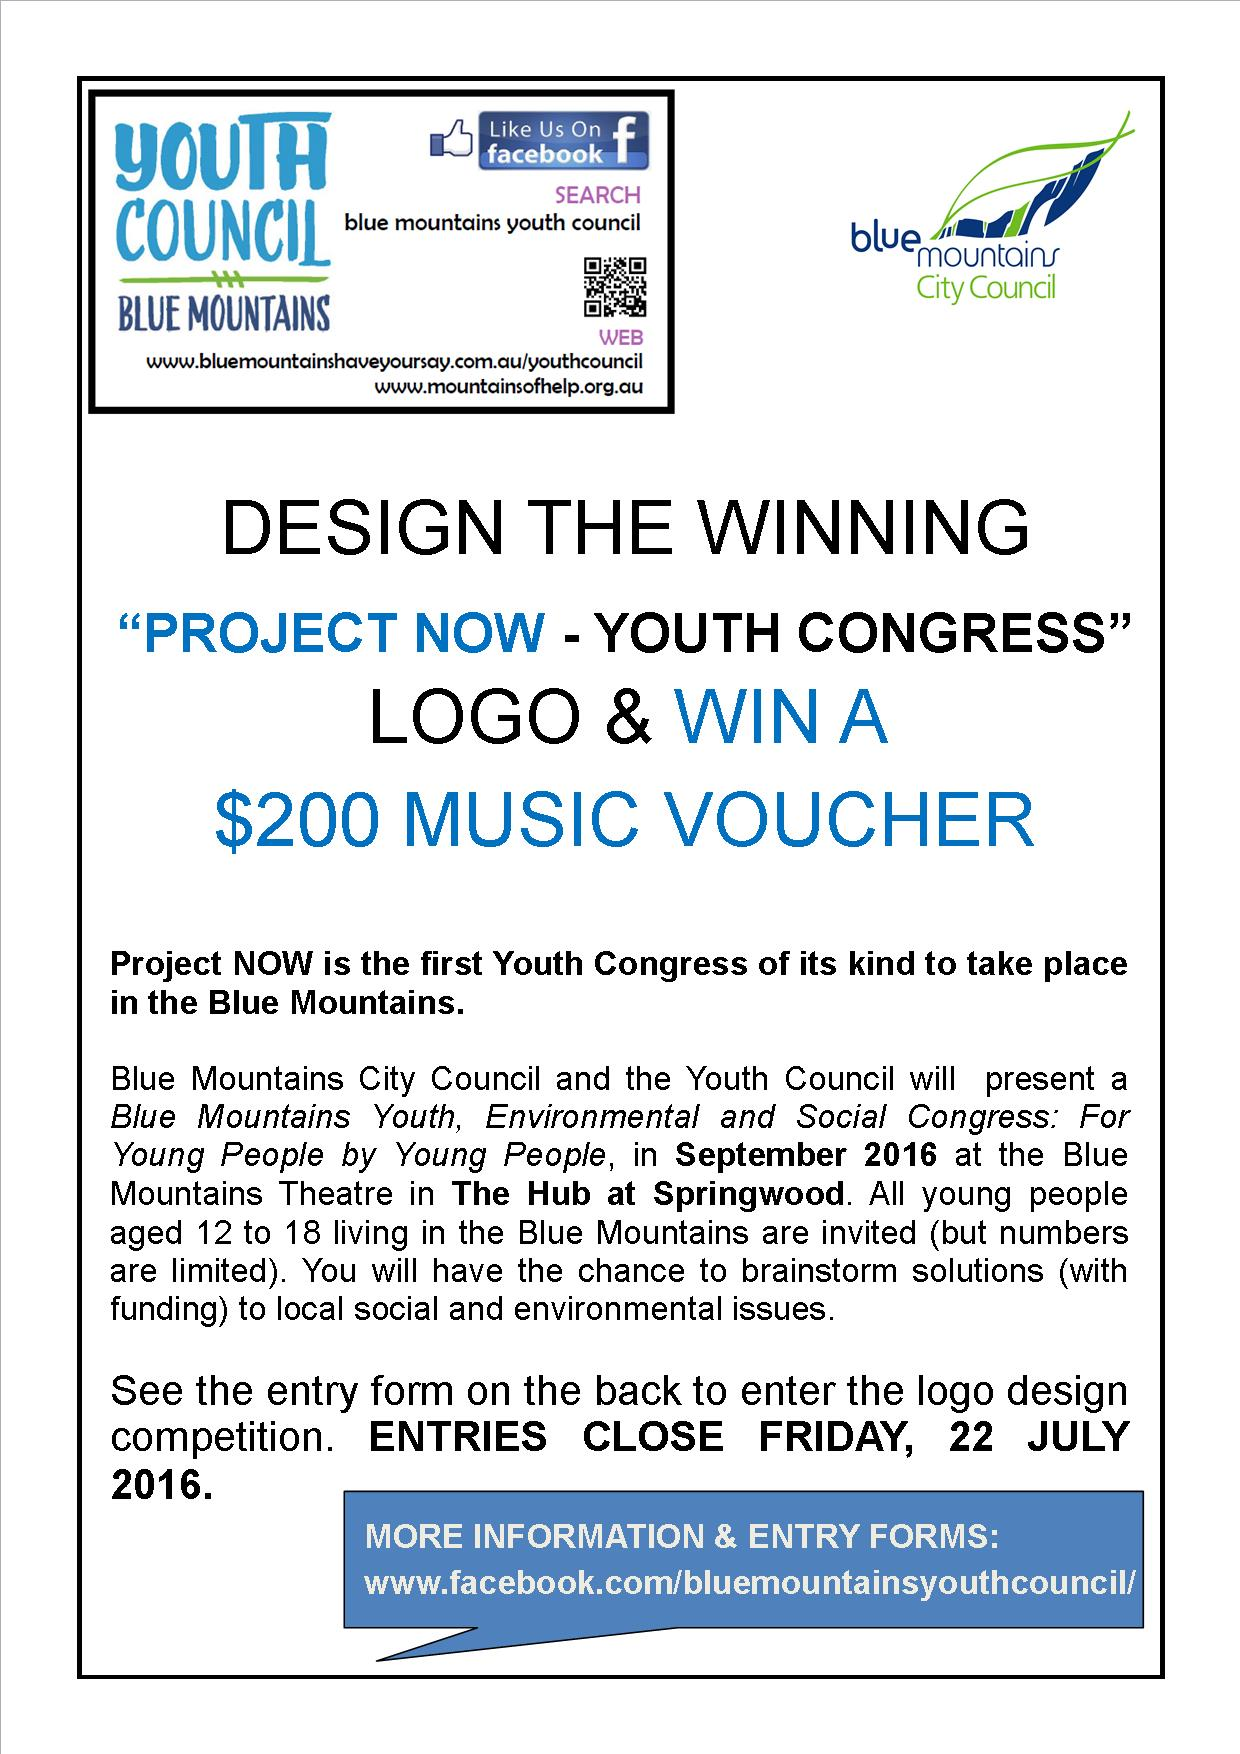 Project_now_youth_congress_-_logo_design_competition_1